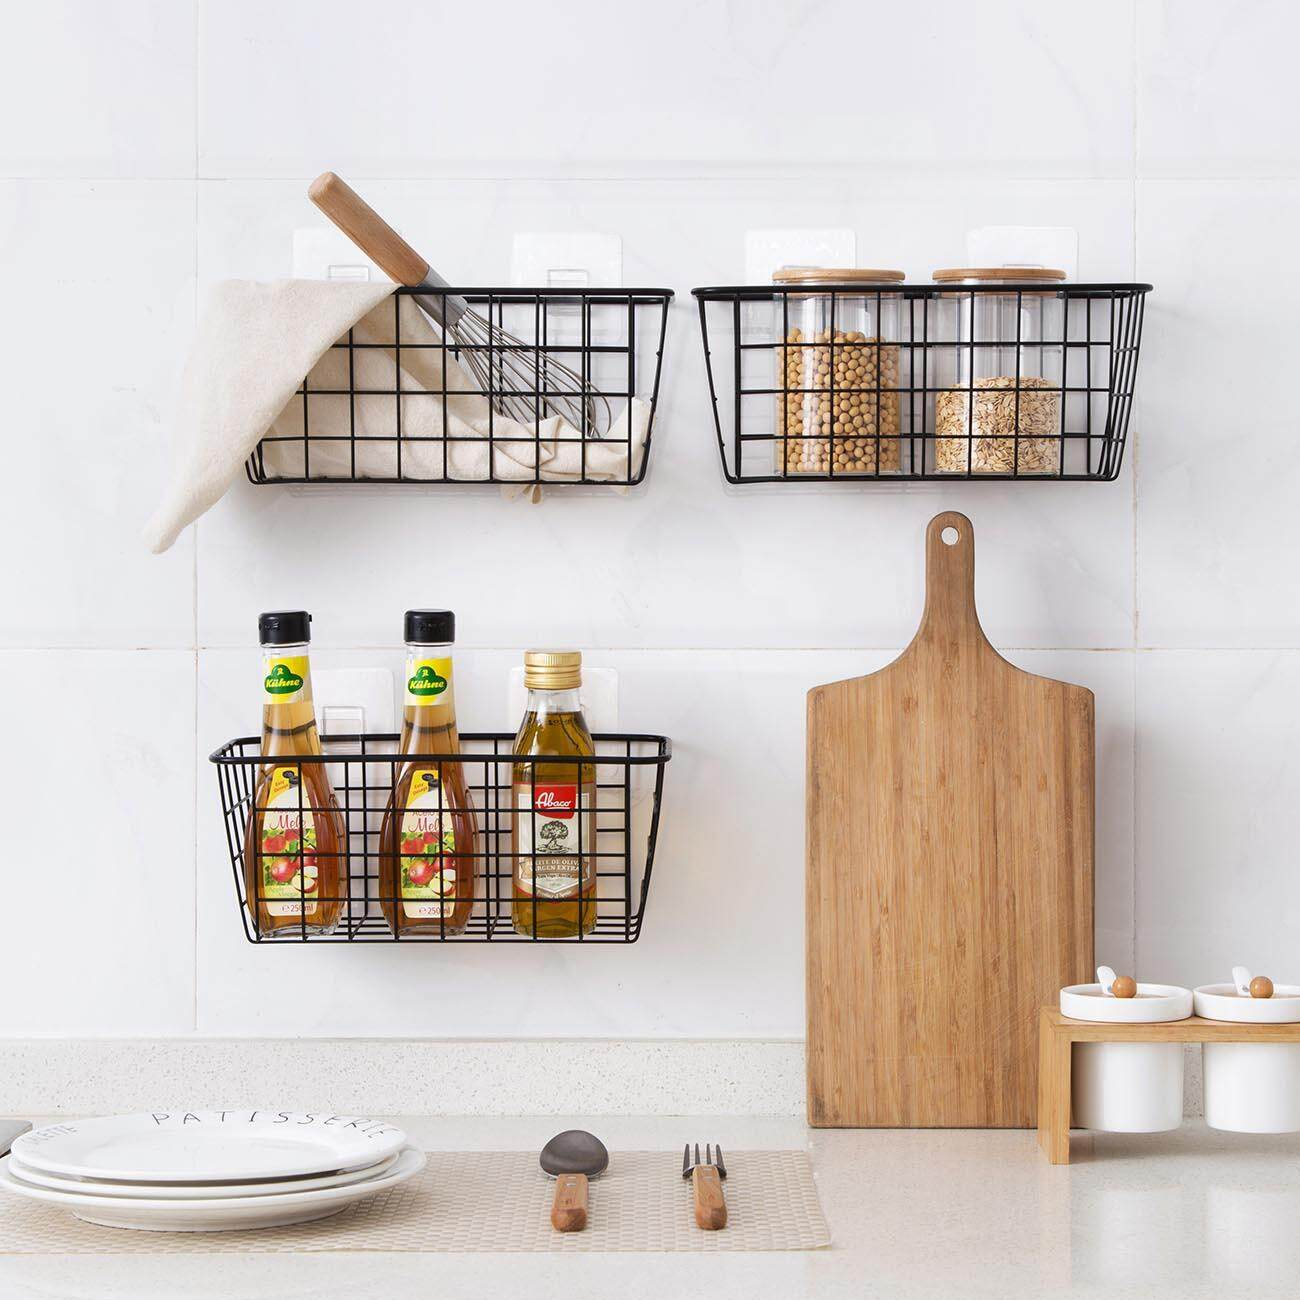 Iron Storage Baskets Kitchen Bathroom Hanging Storage Shelf Wall Spice Rack Condiment Shampoo Soap Cosmetic Holder By Homenhome Official Store.